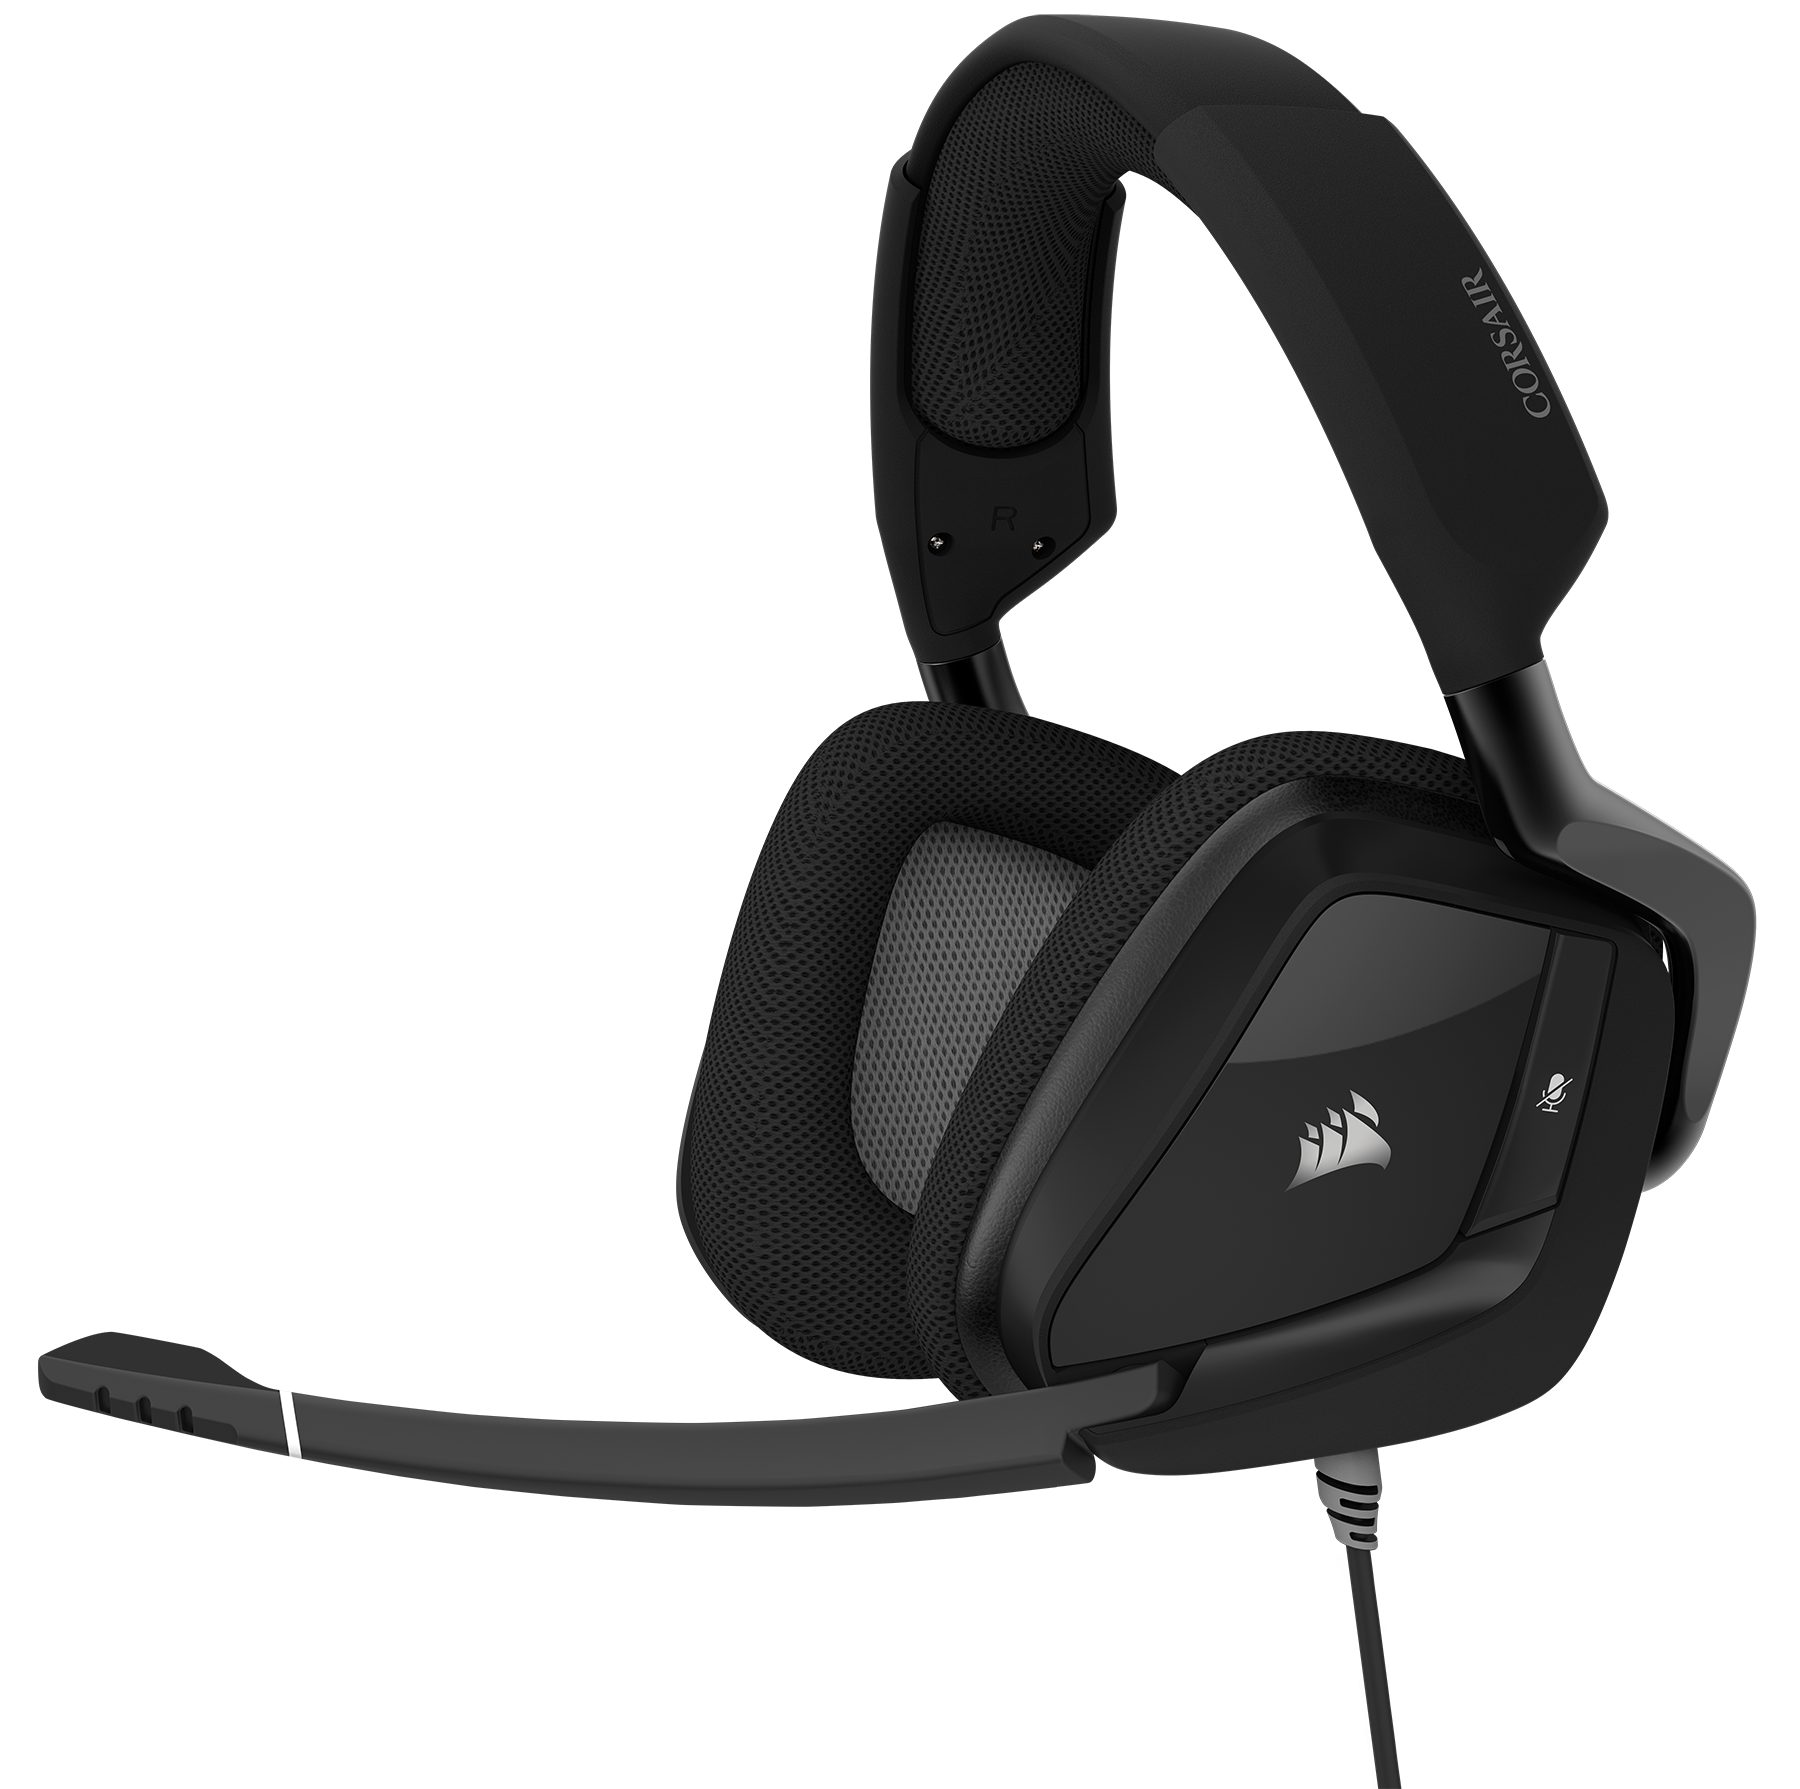 Void Pro Rgb Usb Premium Gaming Headset With Dolby Headphone 71 Mic Free Download Wiring Diagrams Pictures Get The Corsair Provides Exceptional Comfort Epic Audio Performance And Legendary Durability To Deliver Ultimate